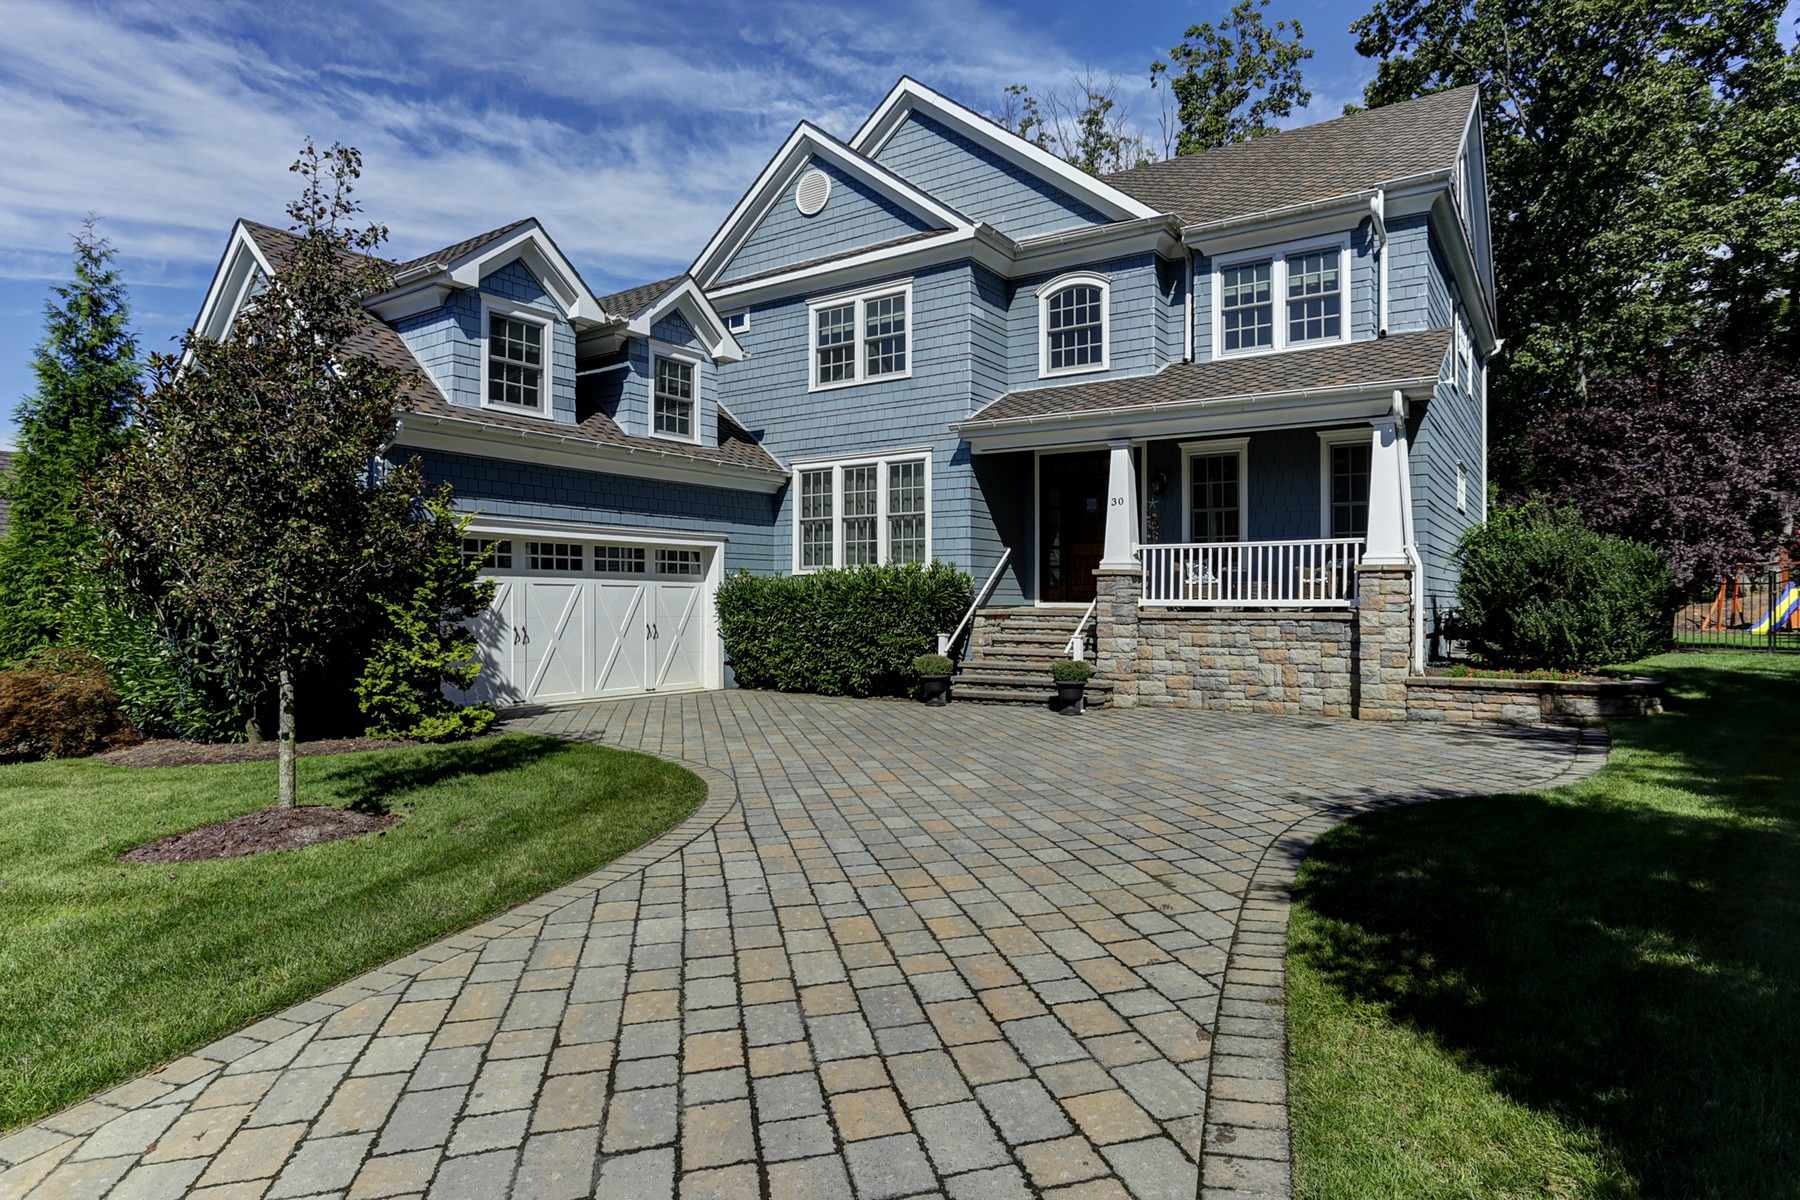 Single Family Home for Sale at Young Navesink Colonial 30 Ridgeview Ave Middletown, 07716 United States